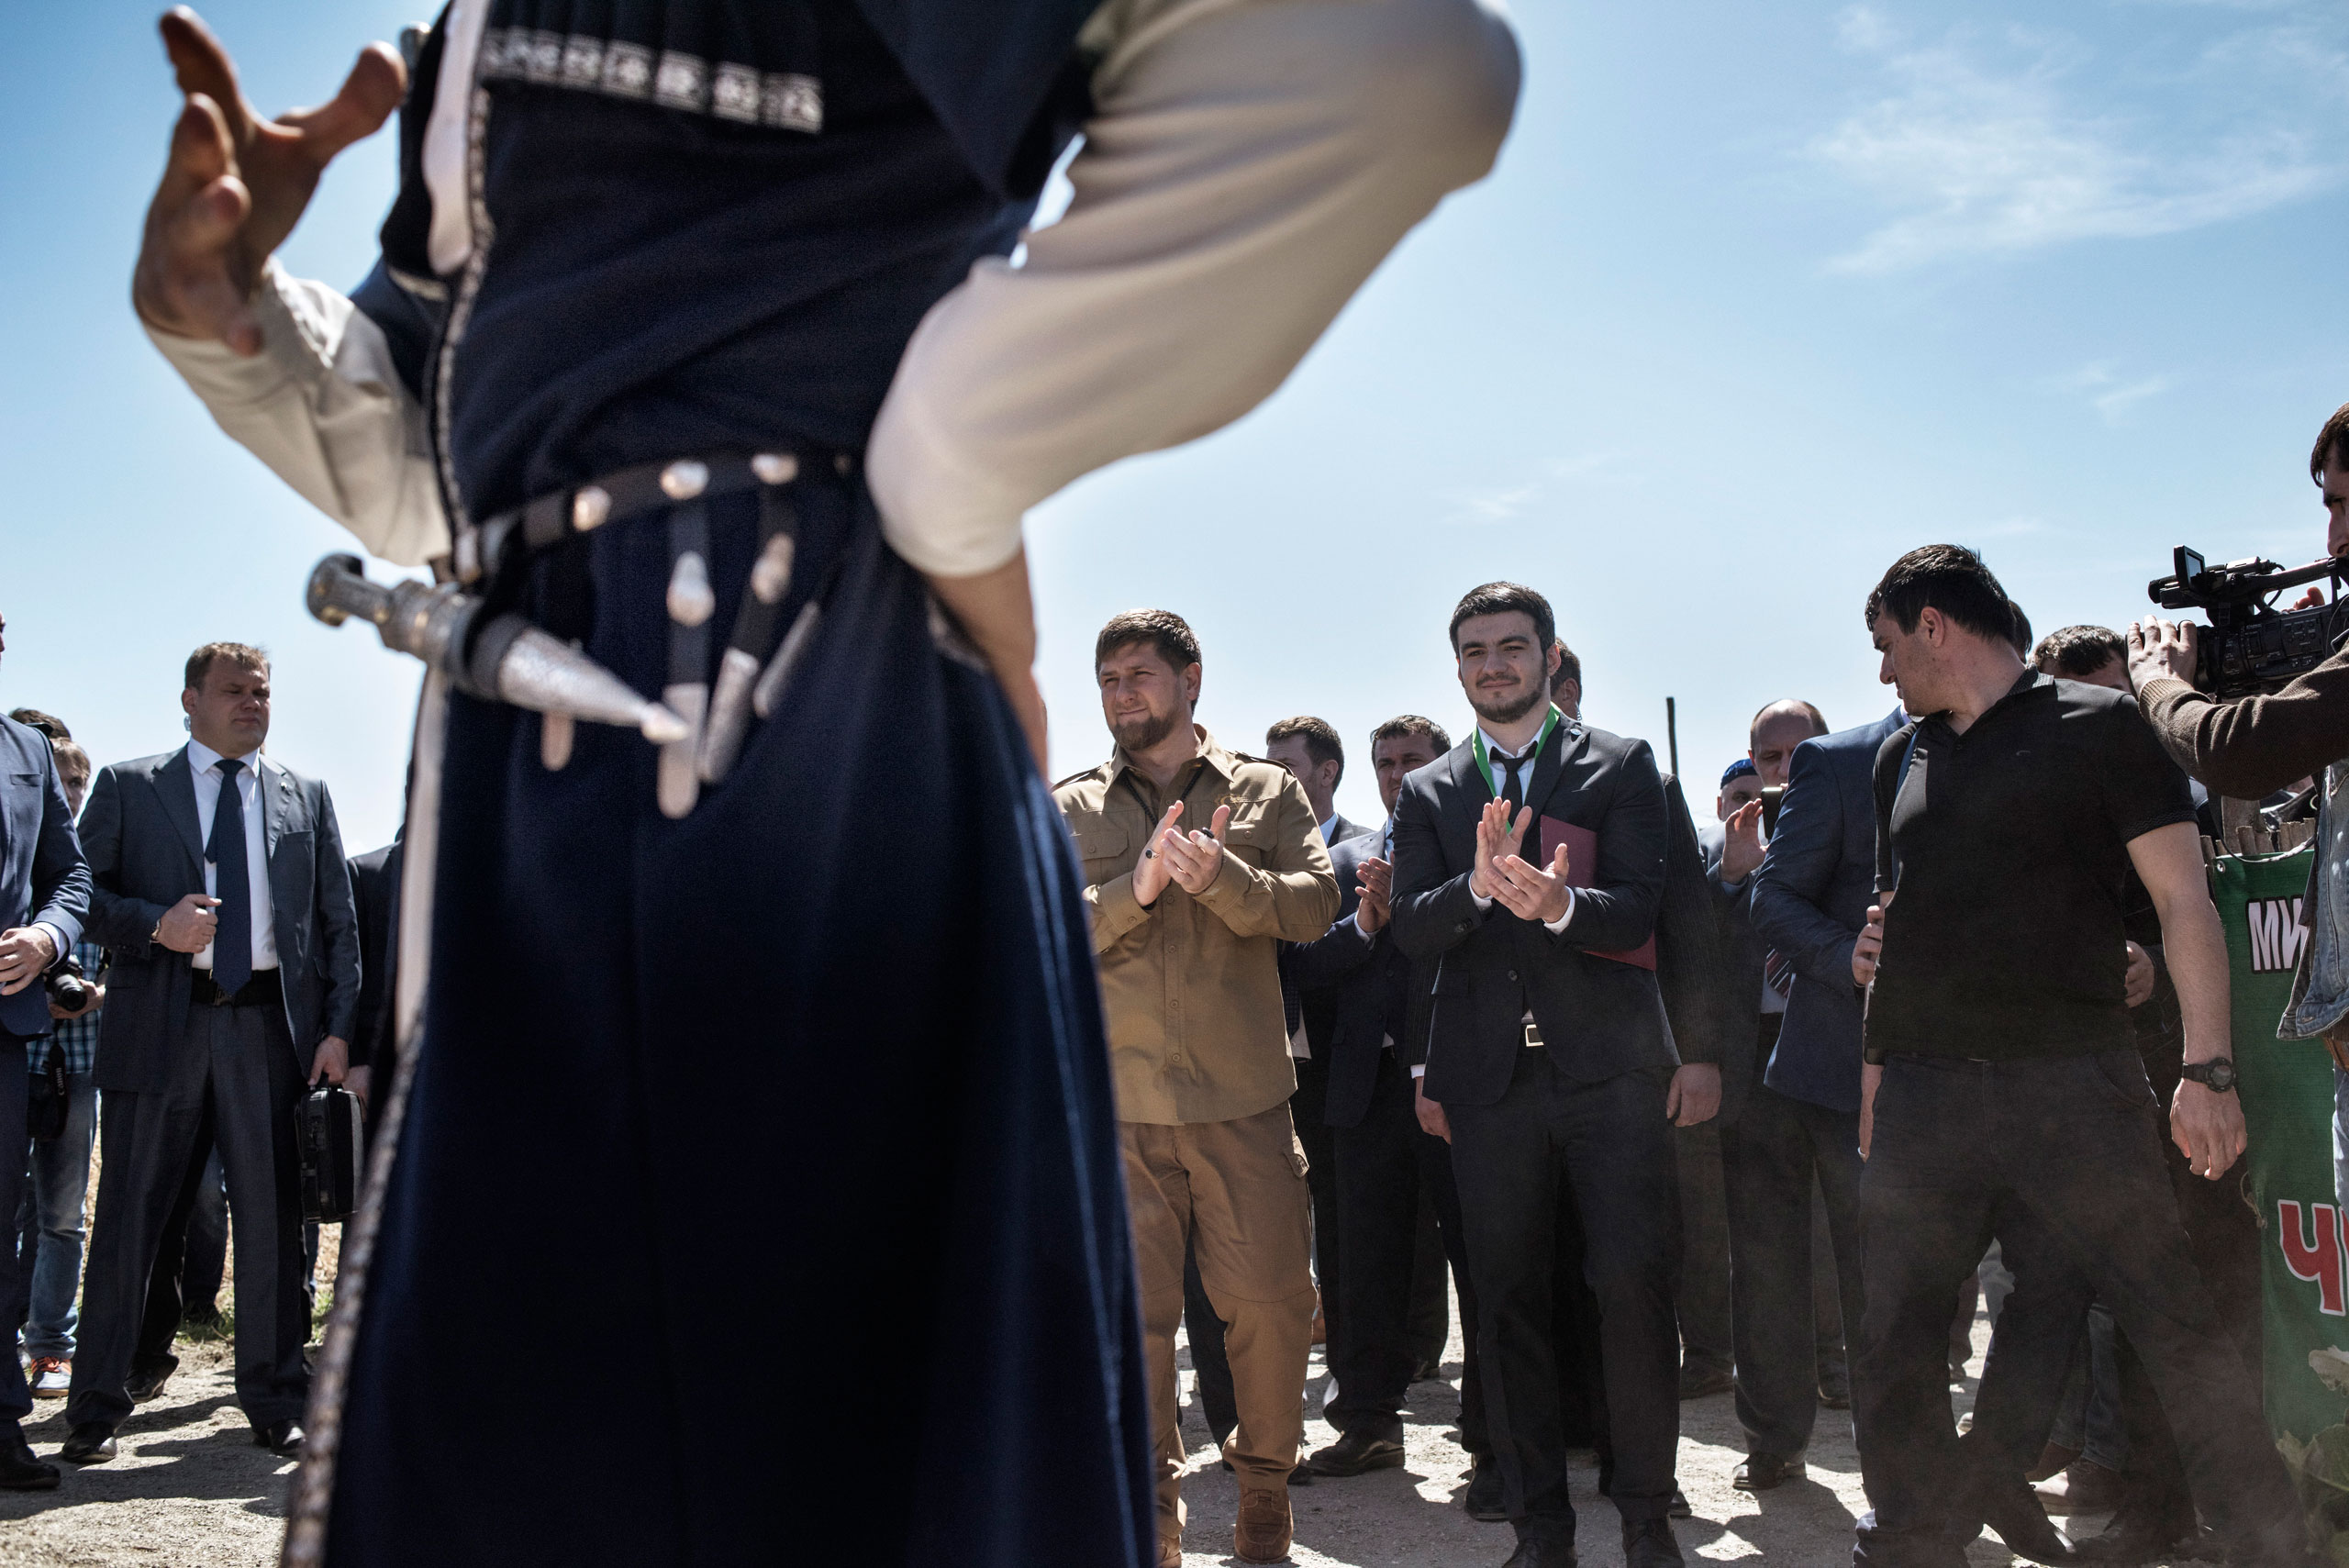 Traditional Chechen folk dancers perform for senior Russian and Chechen officials at a cultural festival near the town of Shali, Chechnya, April 2015.